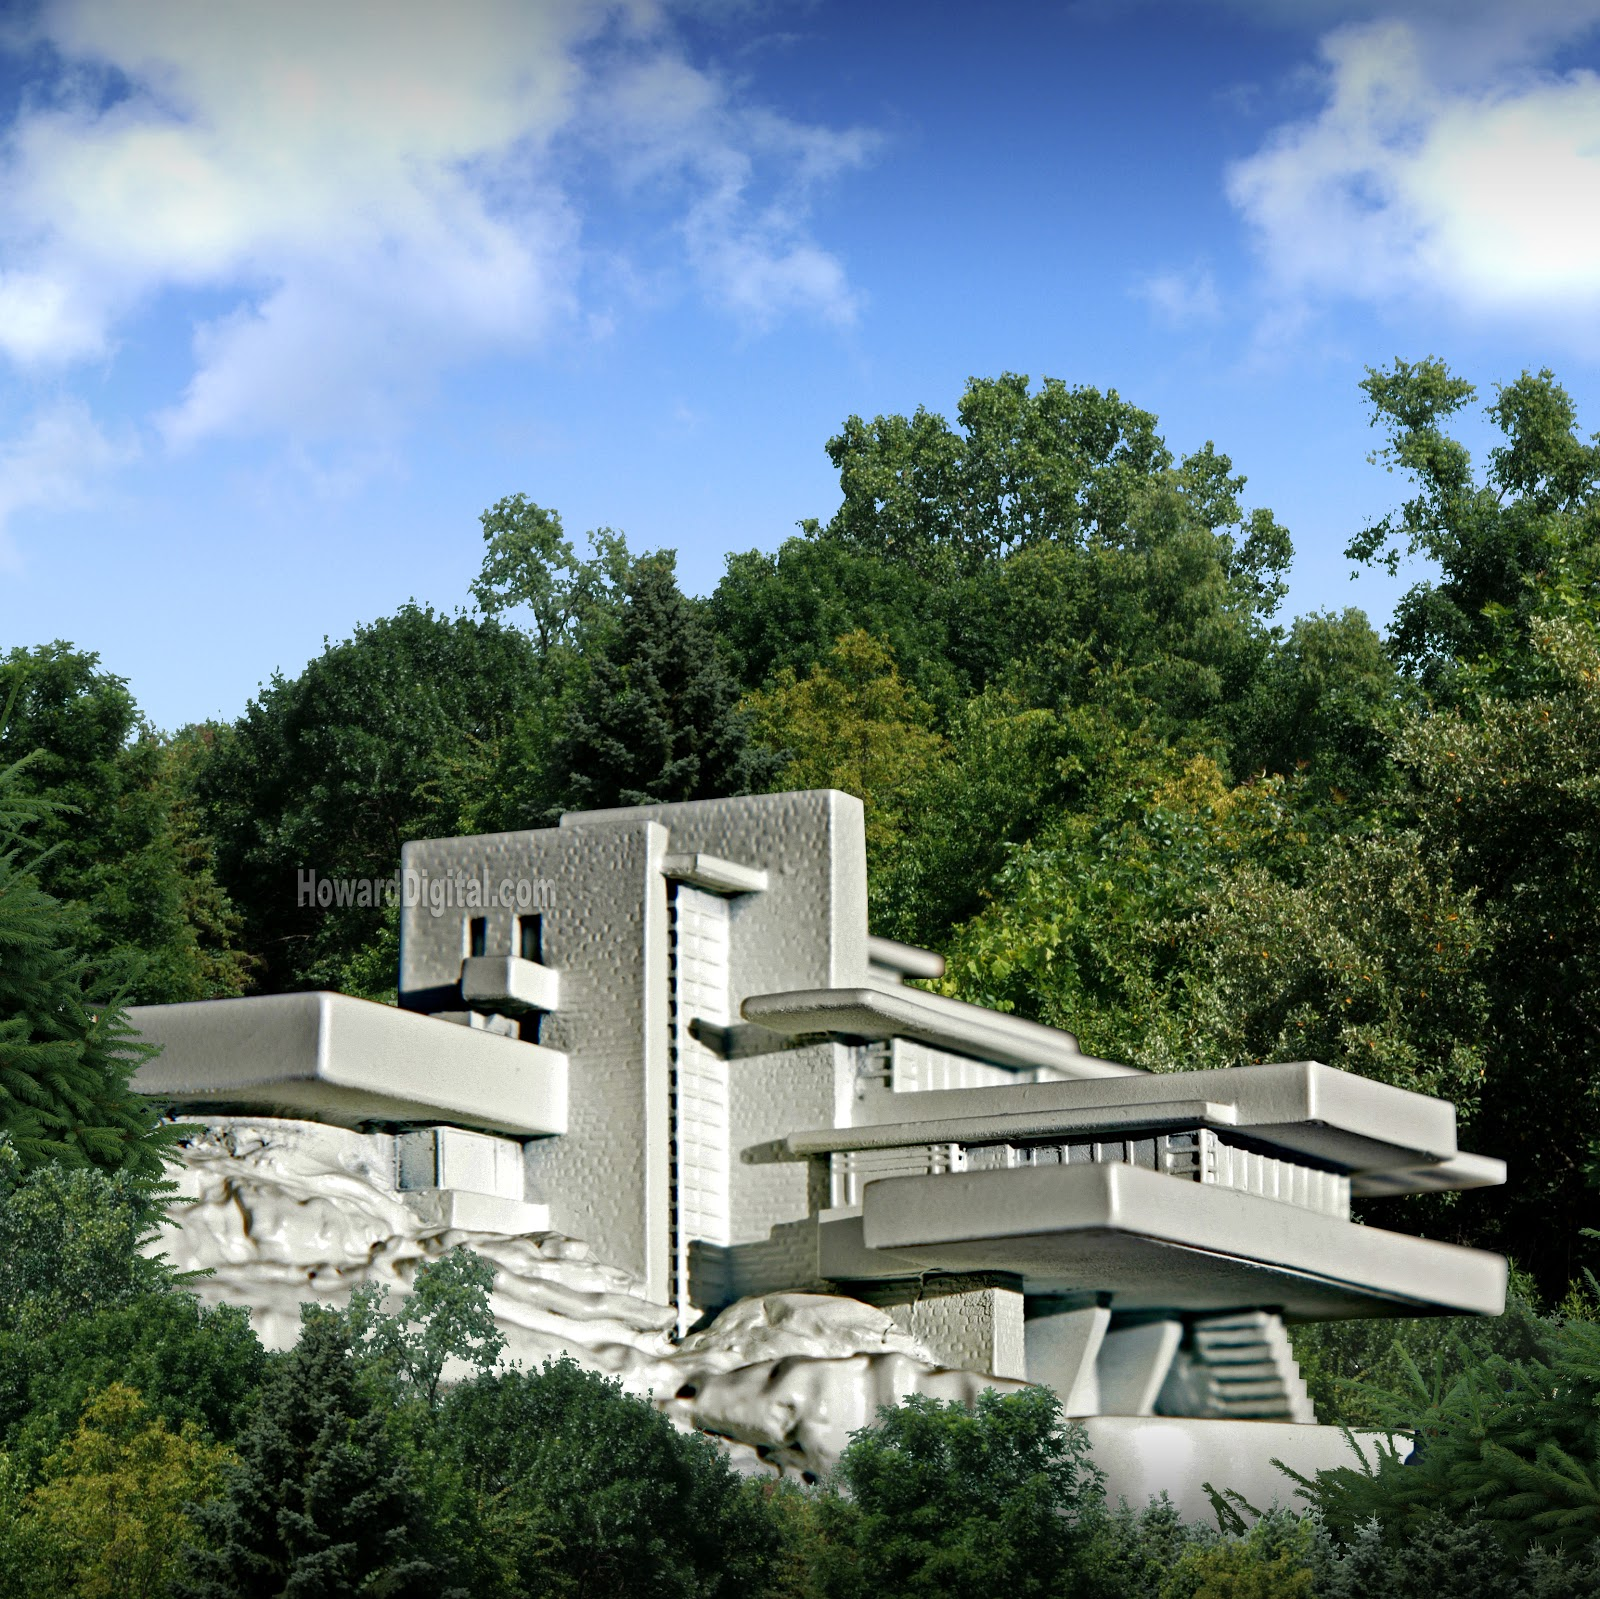 Modern Architecture Frank Lloyd Wright architecture as aesthetics: fallingwater